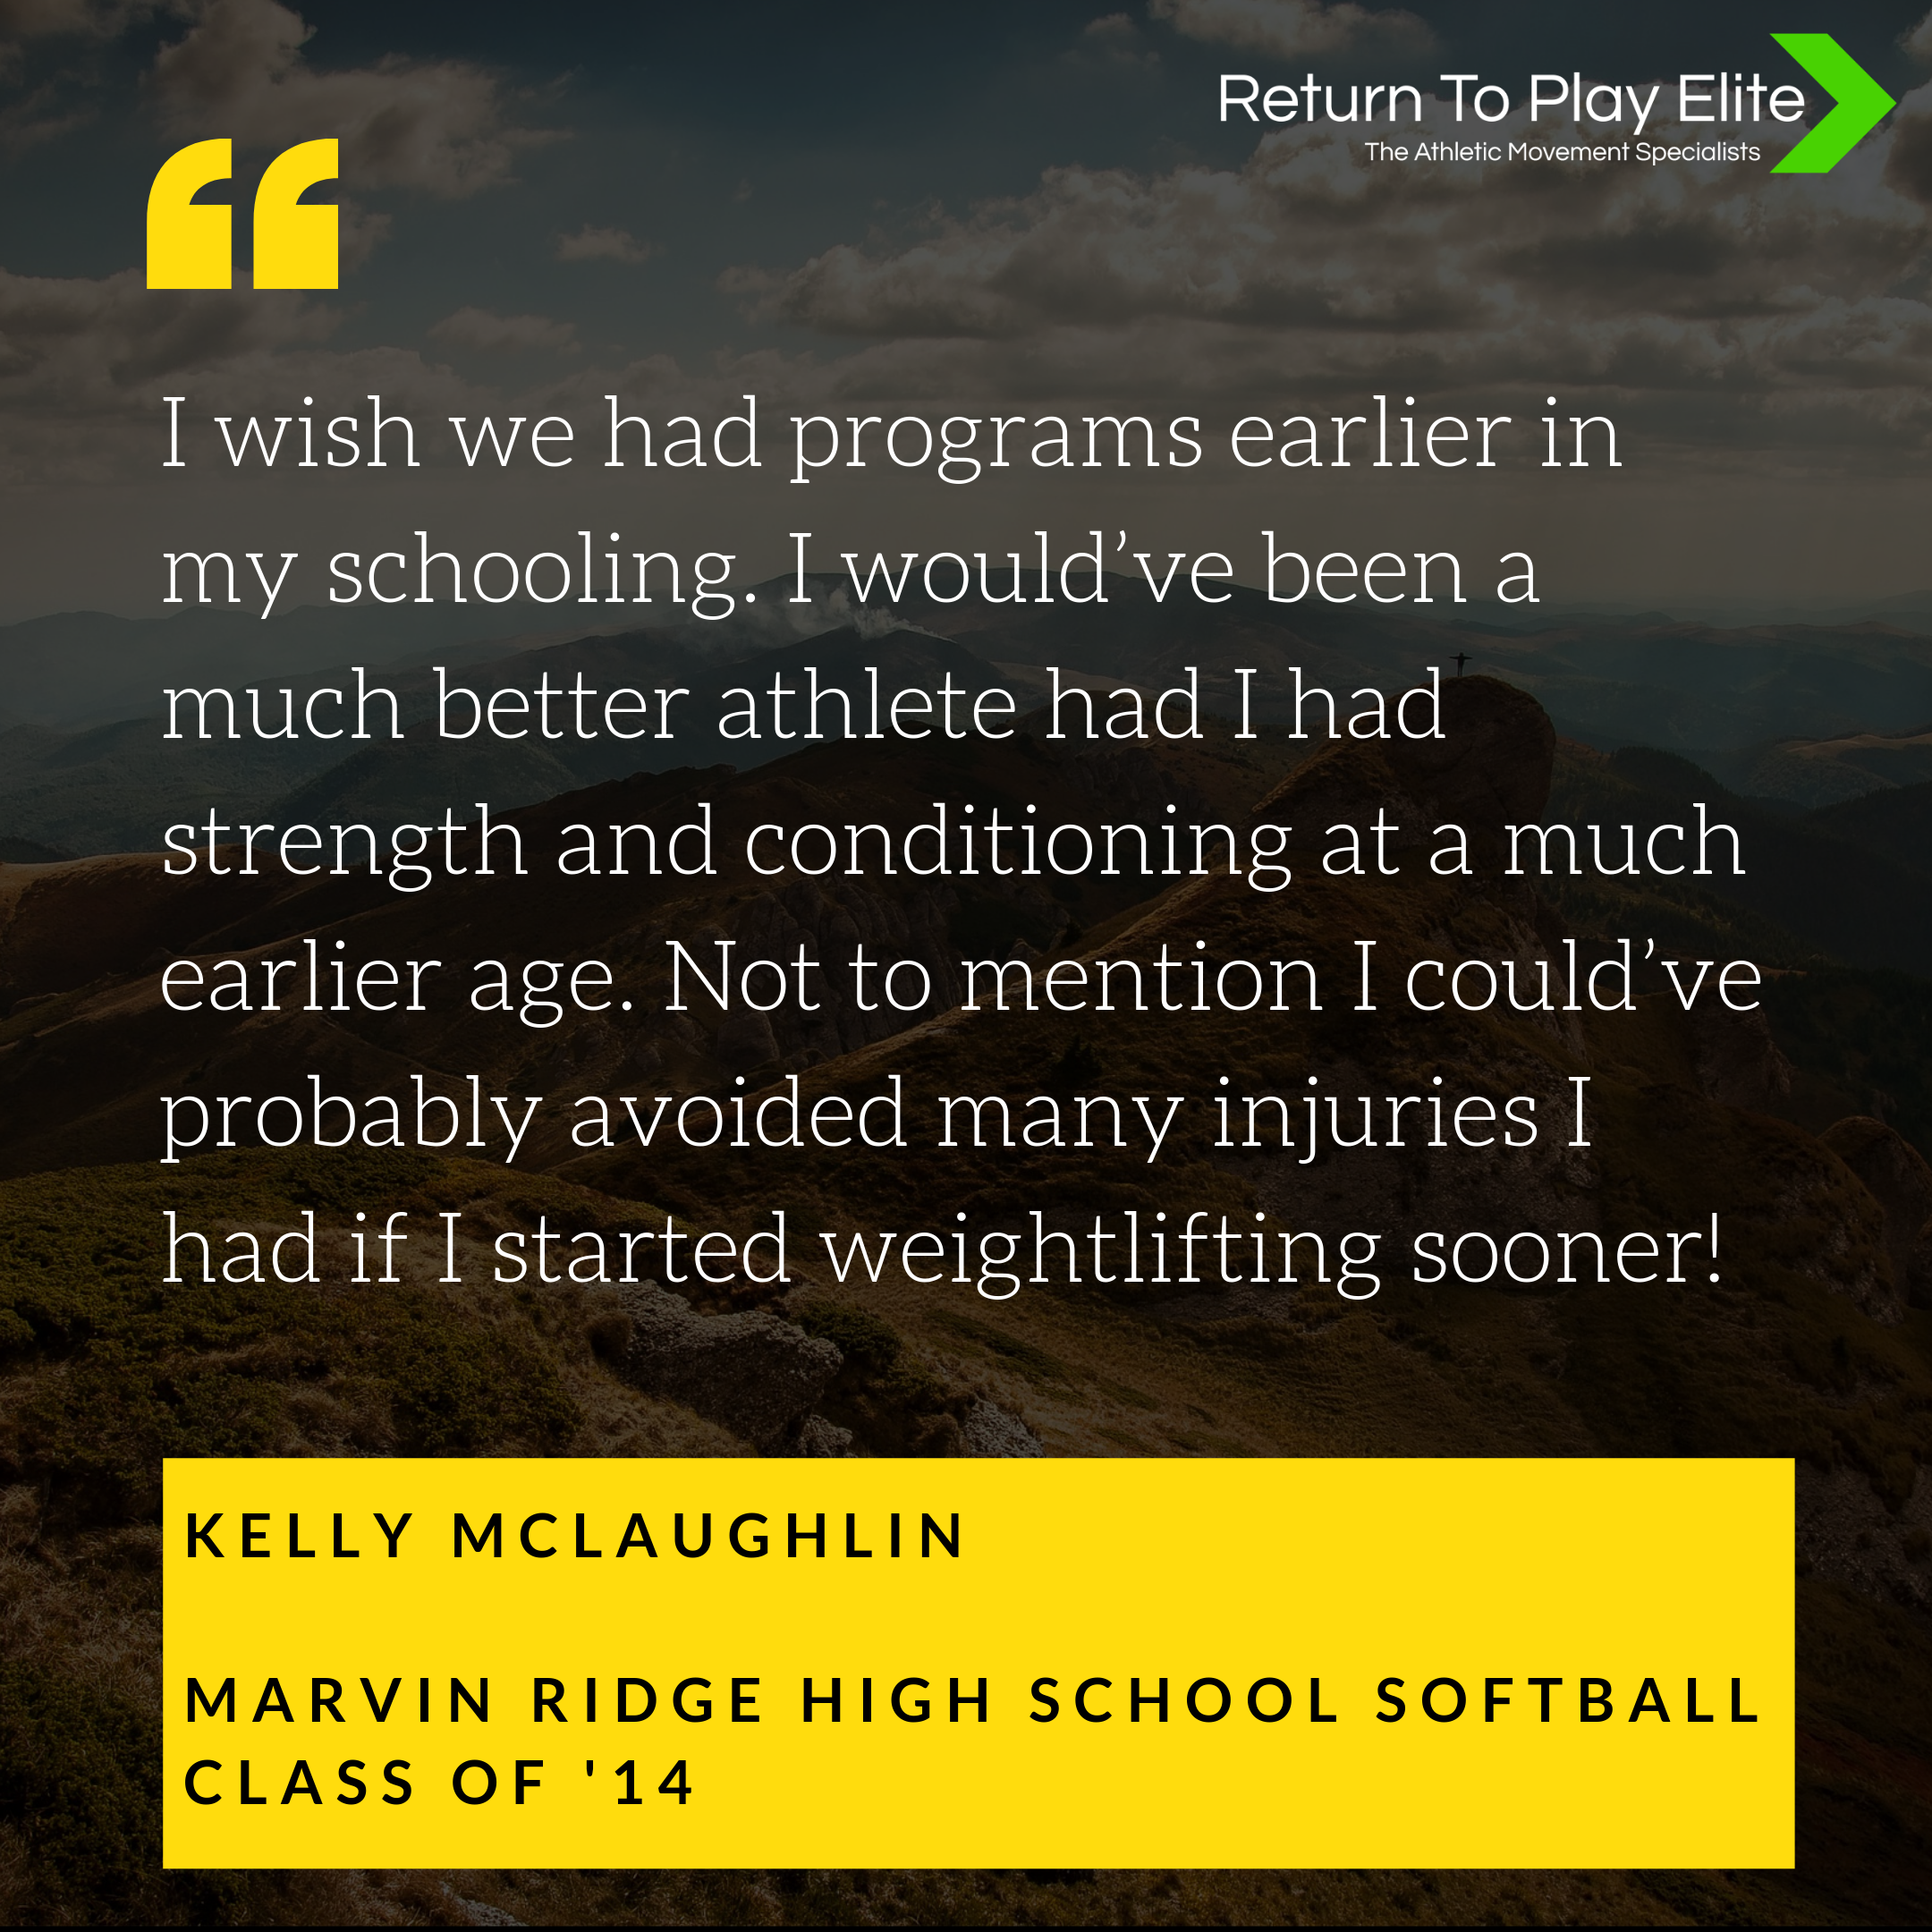 I wish we had programs earlier in my schooling. I would've been a much better athlete had I had strength and conditioning at a much earlier age. Not to mention I could've probably avoided many injuries I had if I sta.png